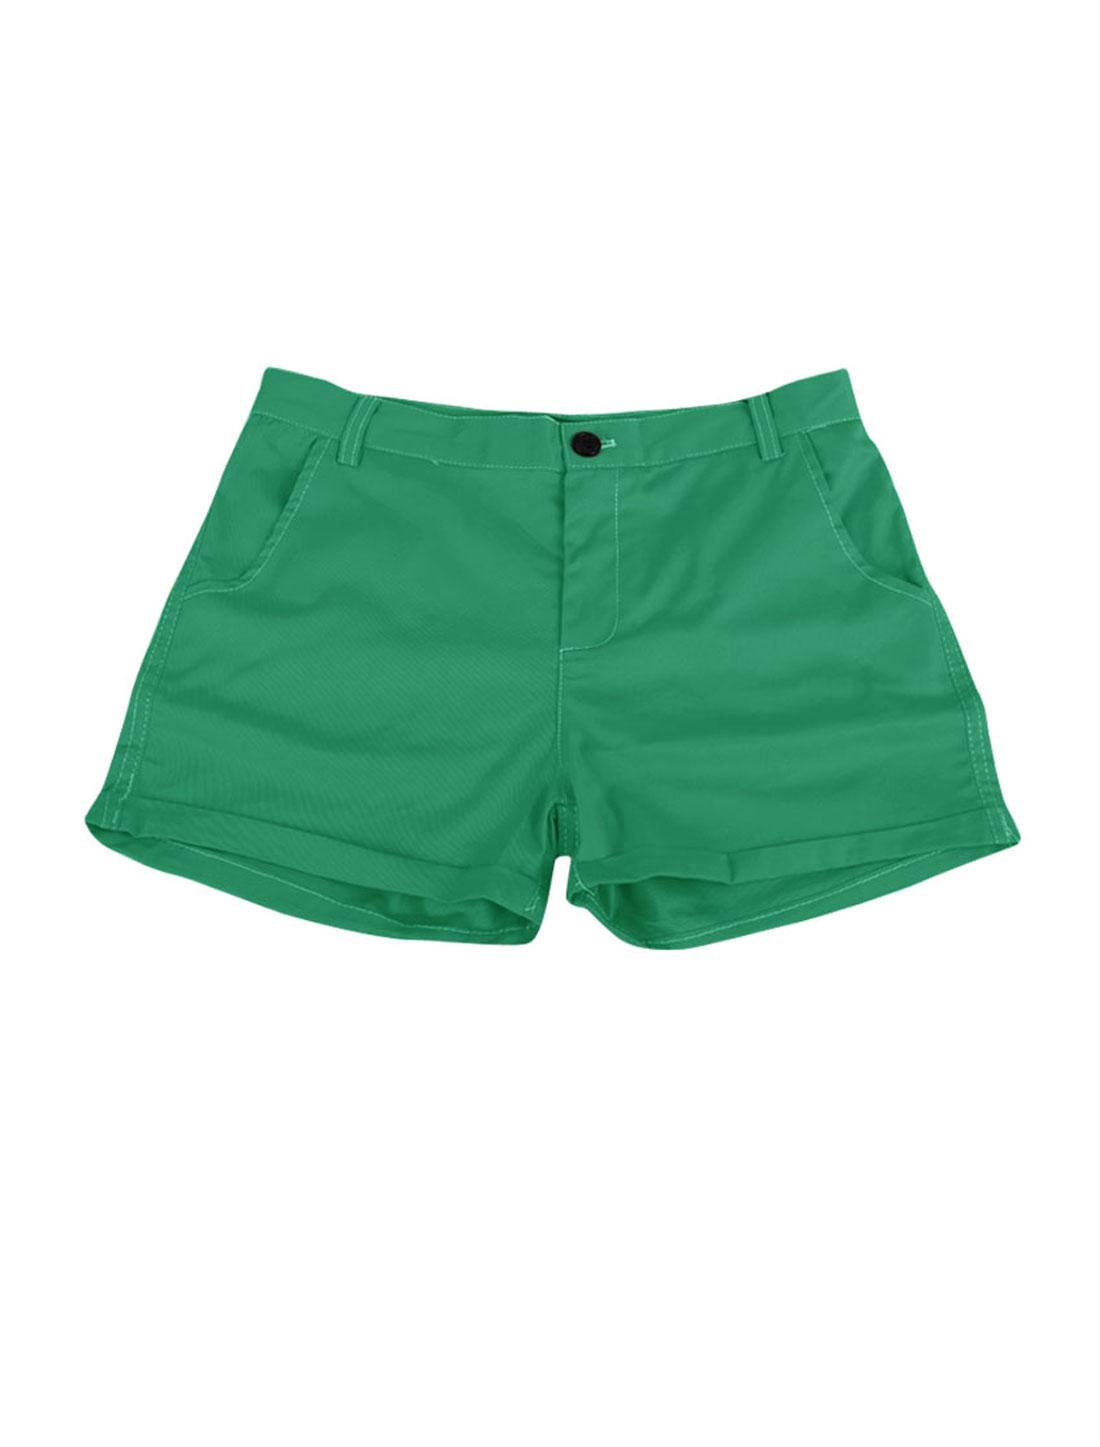 Green S Hidden Zip Roll Up Hem Back Pockets Casual Shorts for Women